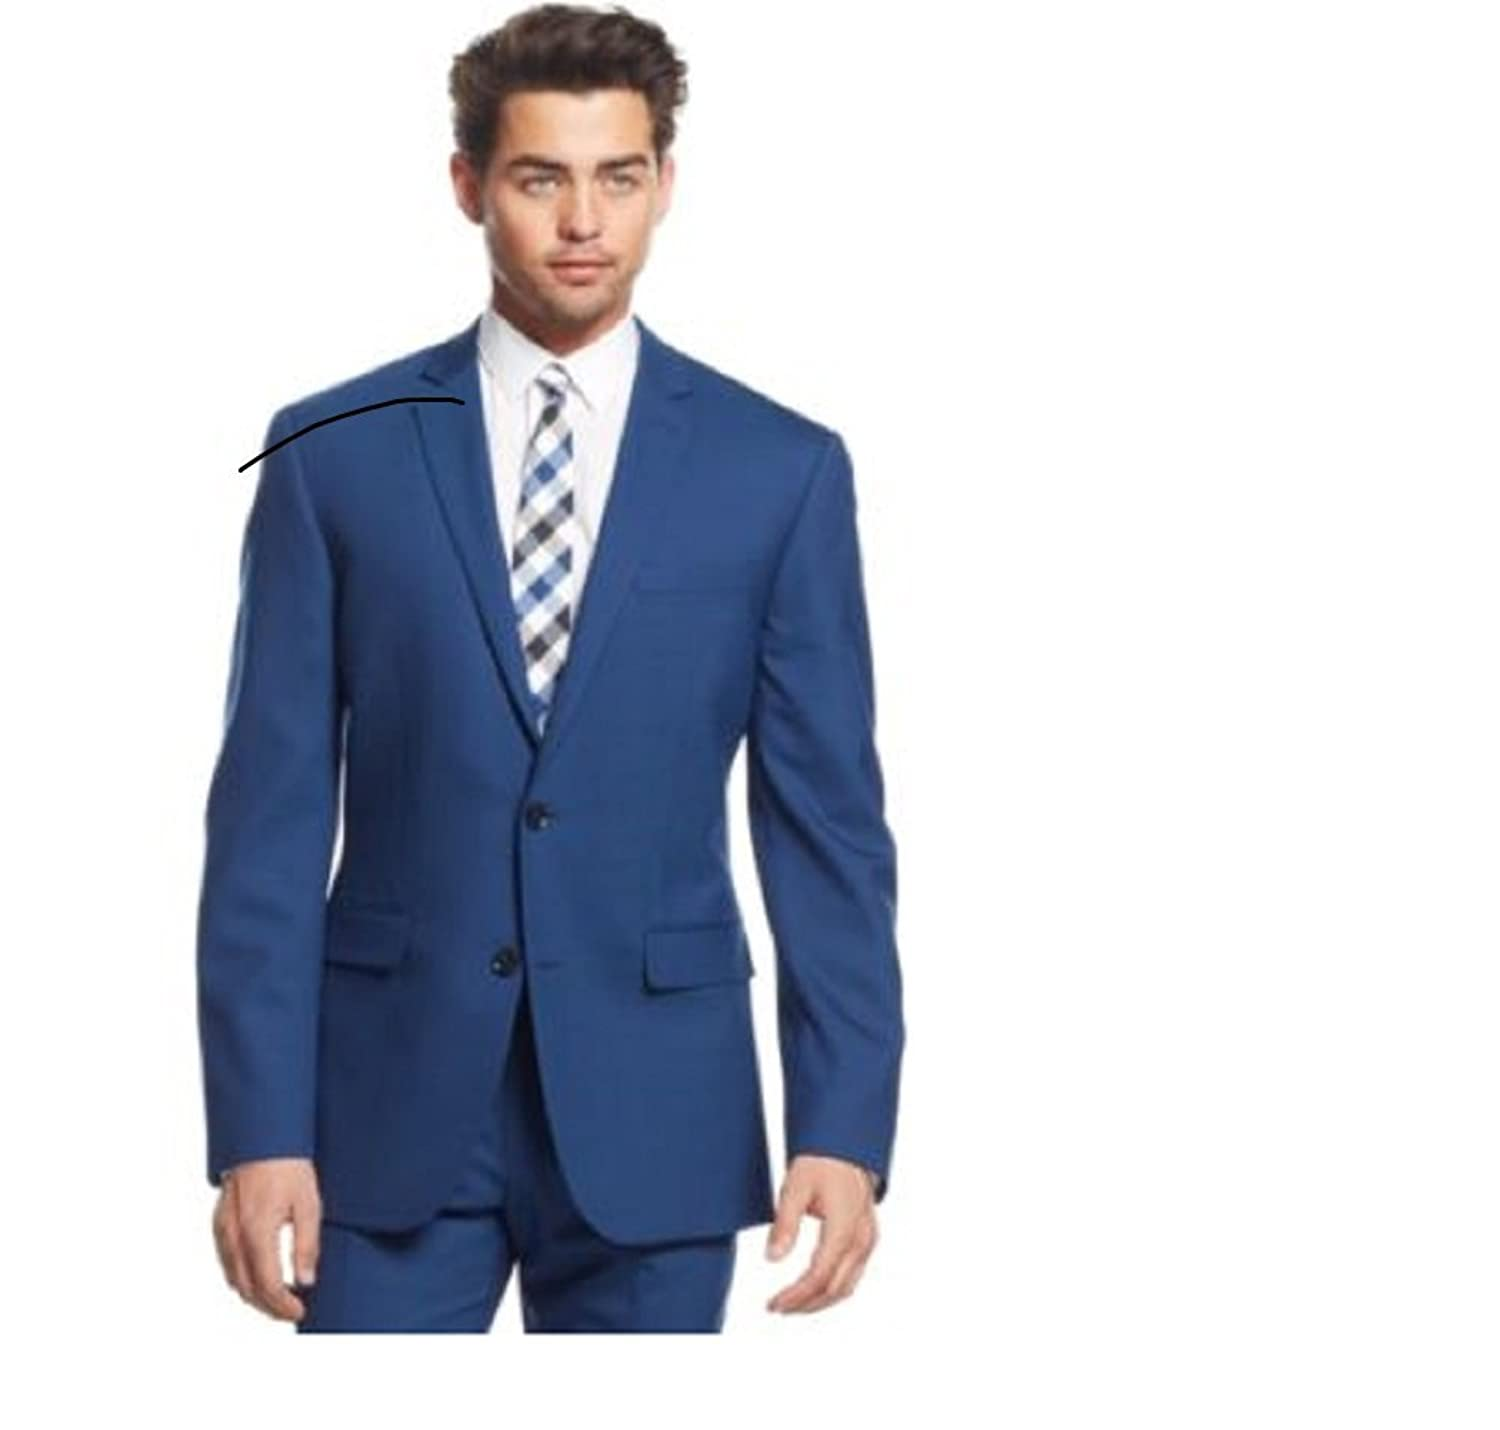 Bar III Cobalt Blue Solid Slim-Fit Suit 40 Long W at Amazon Men's ...